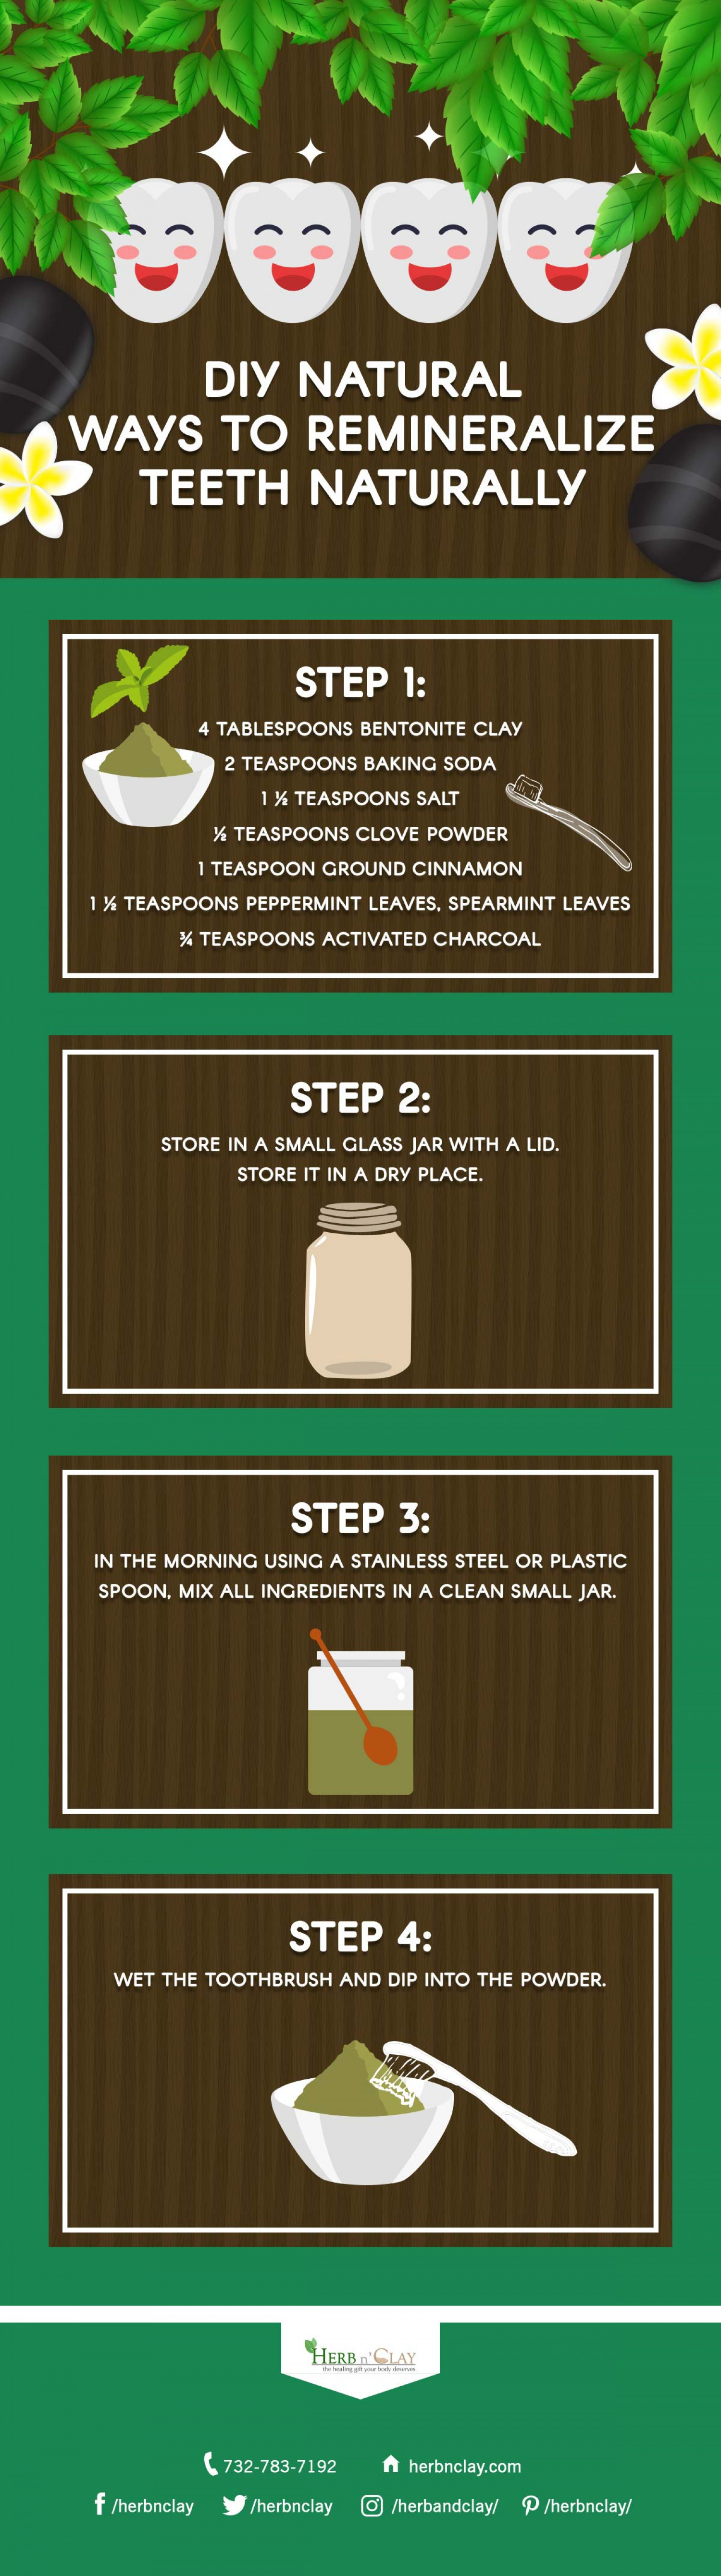 DIY Natural Ways to Remineralize Teeth Infographic